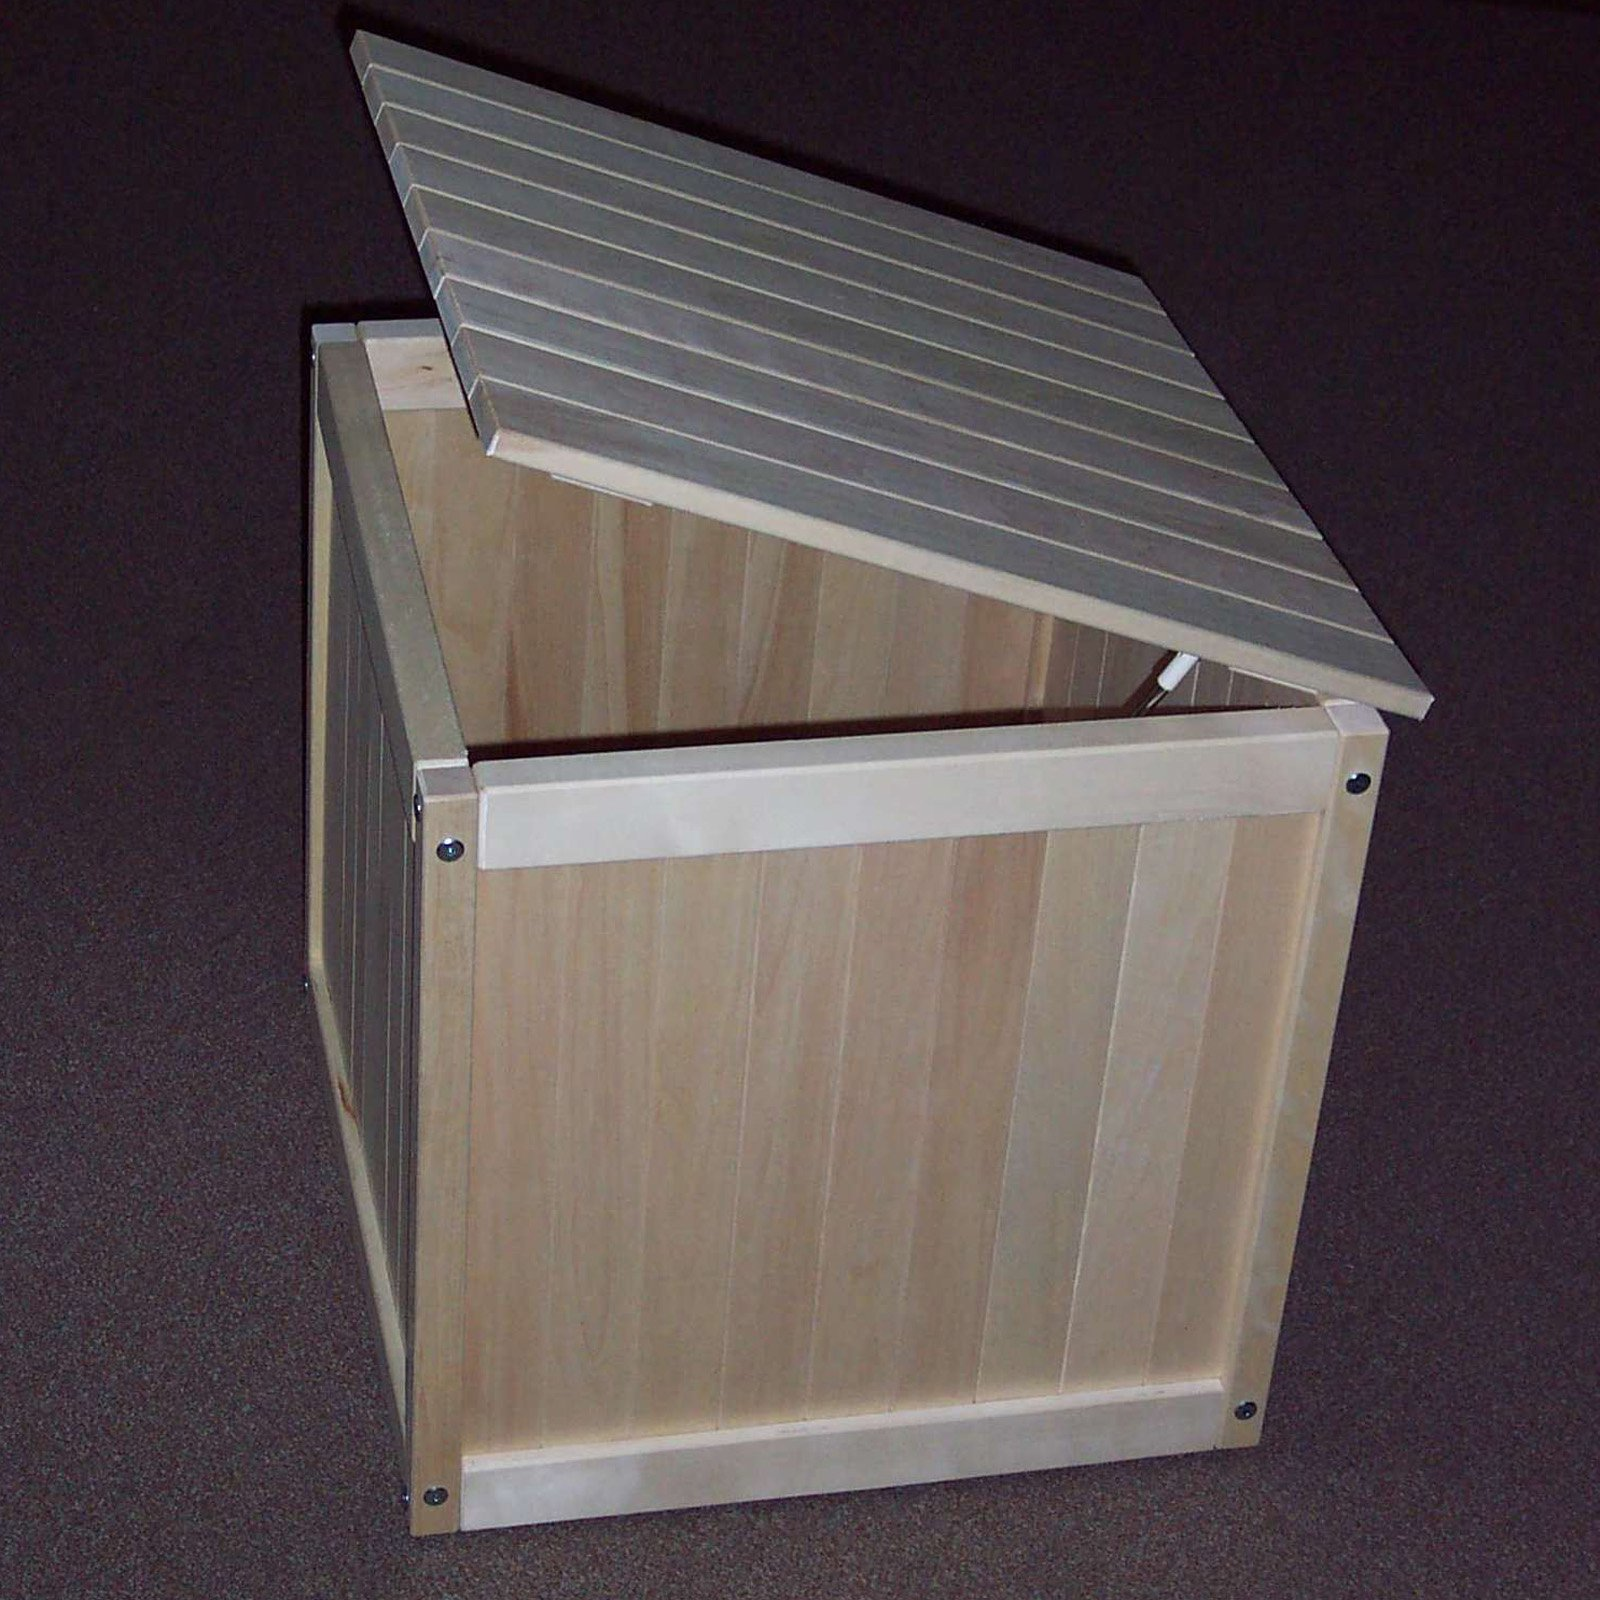 Prairie Leisure Classic 25 in. Outdoor Wood Storage Cube